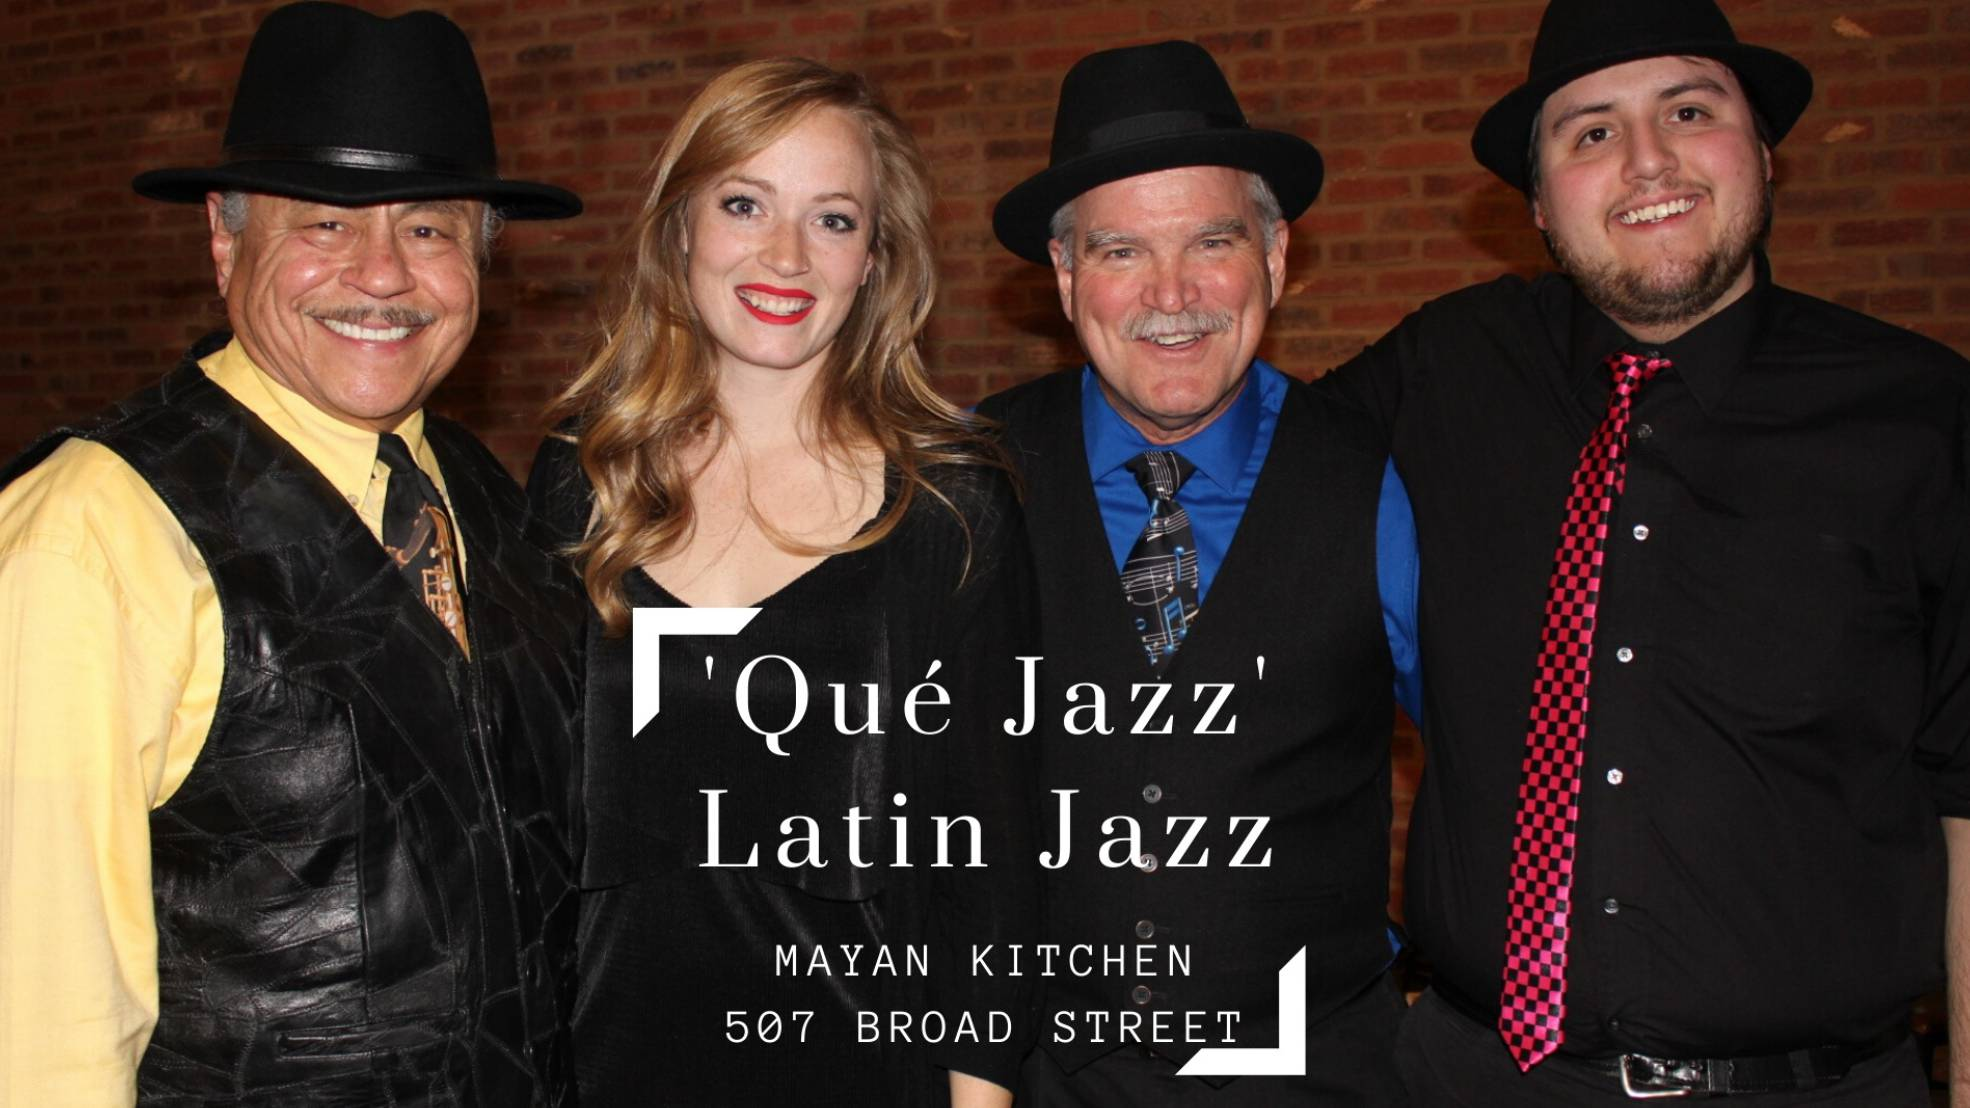 Latin Jazz Night